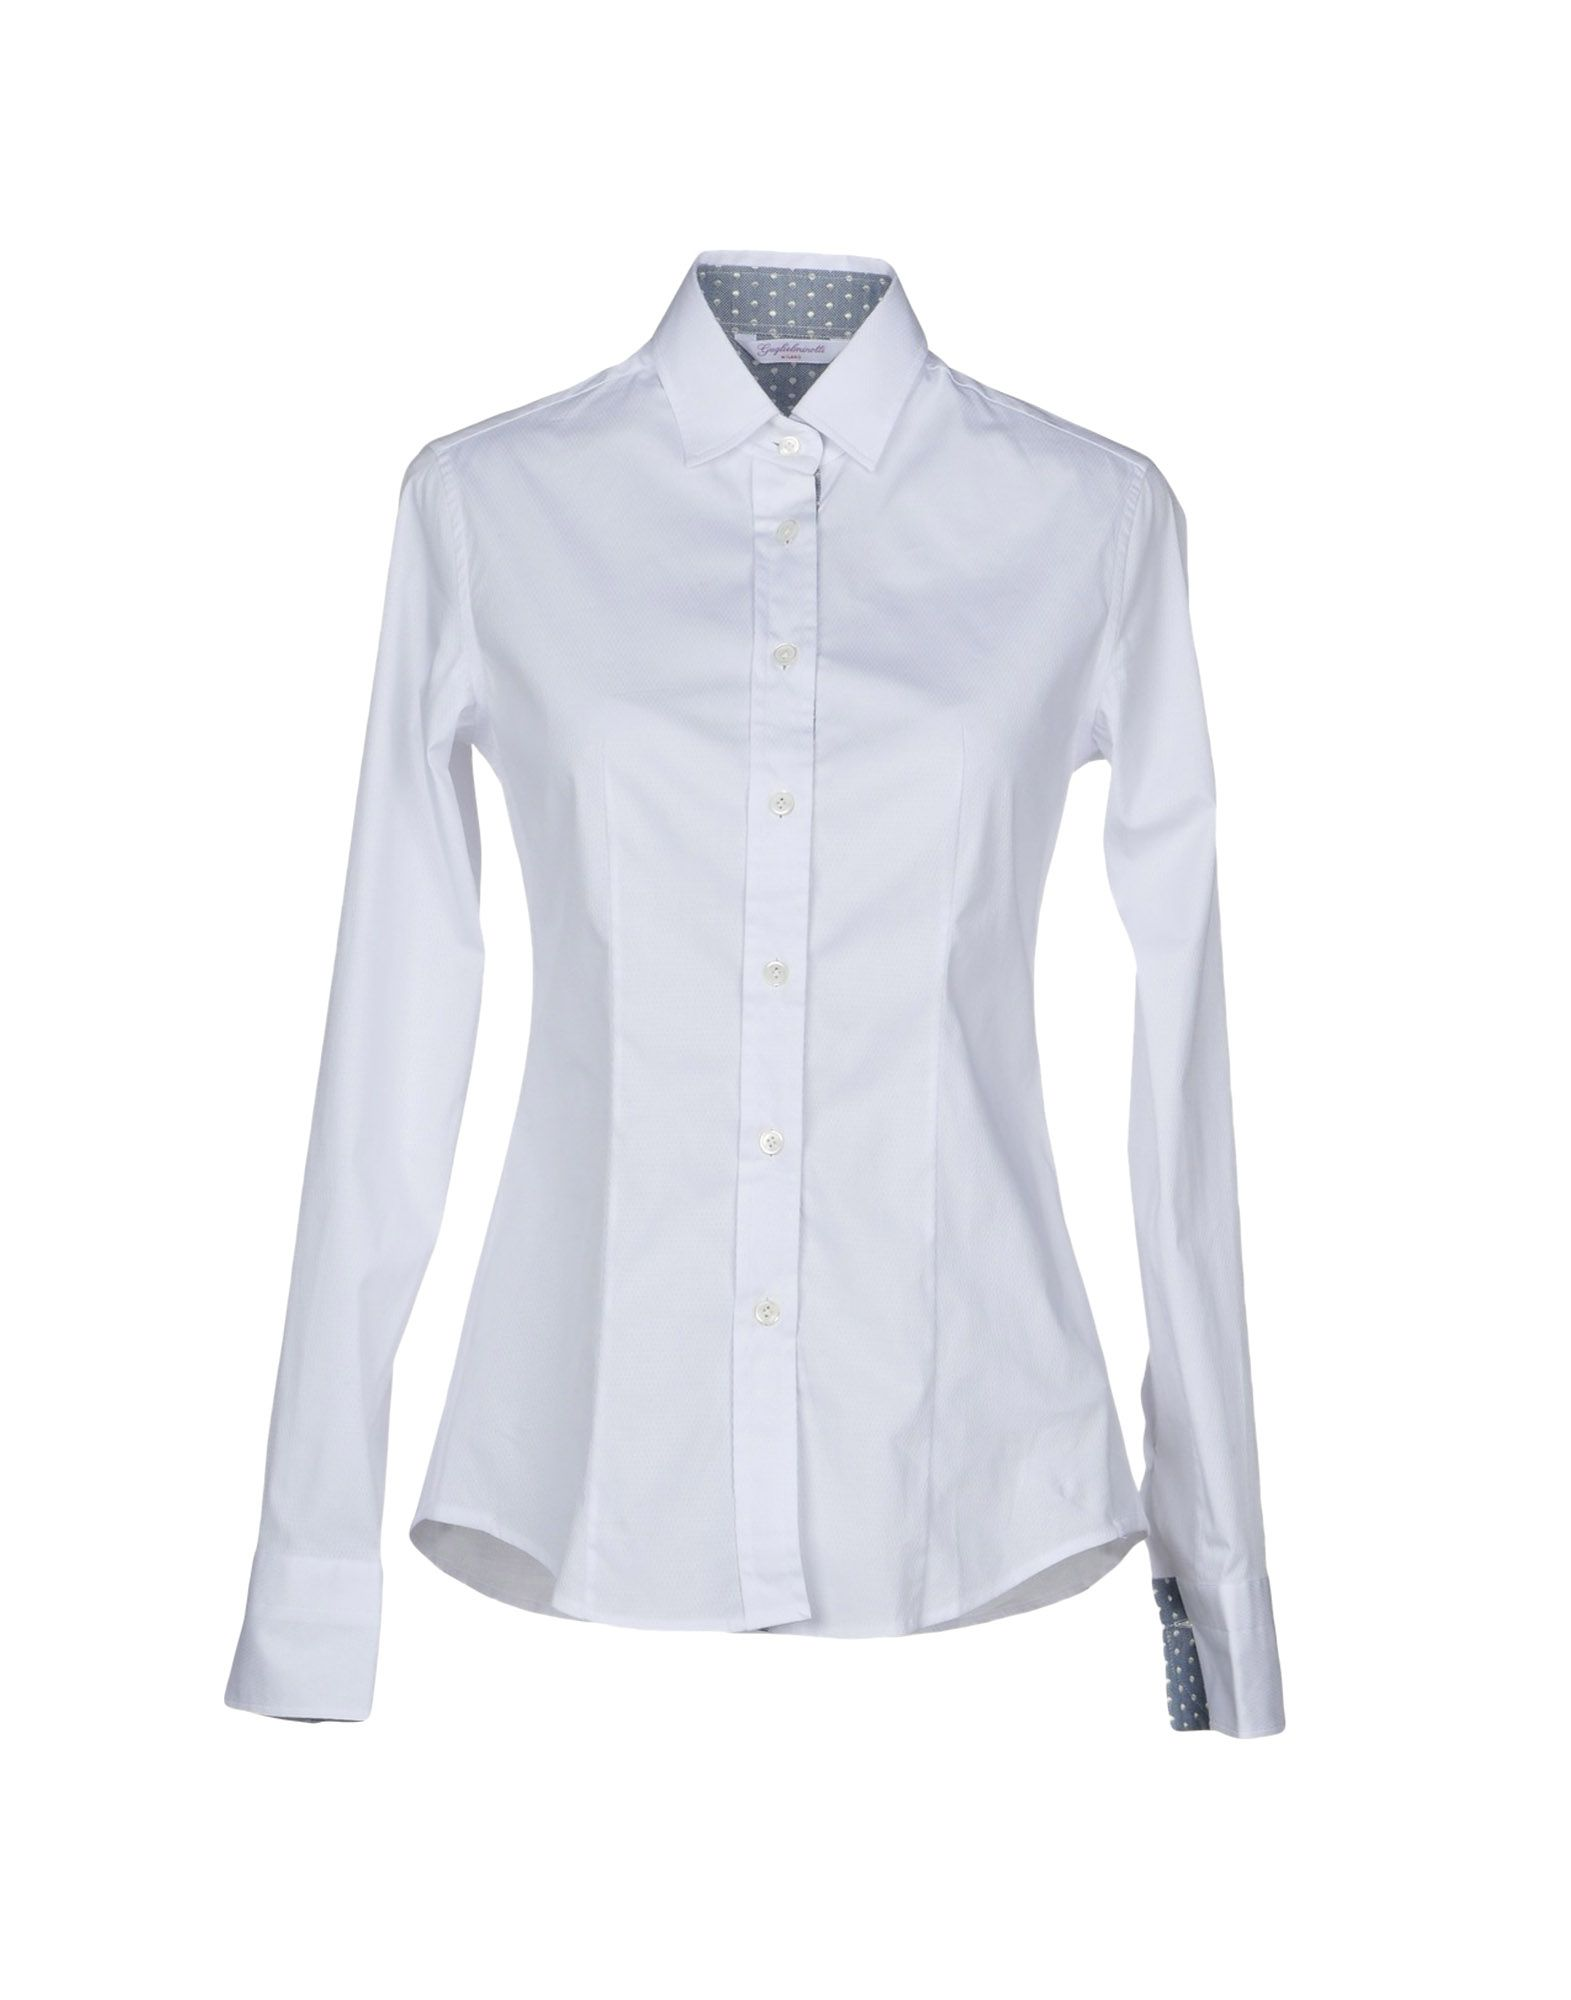 GUGLIELMINOTTI Solid Color Shirts & Blouses in White